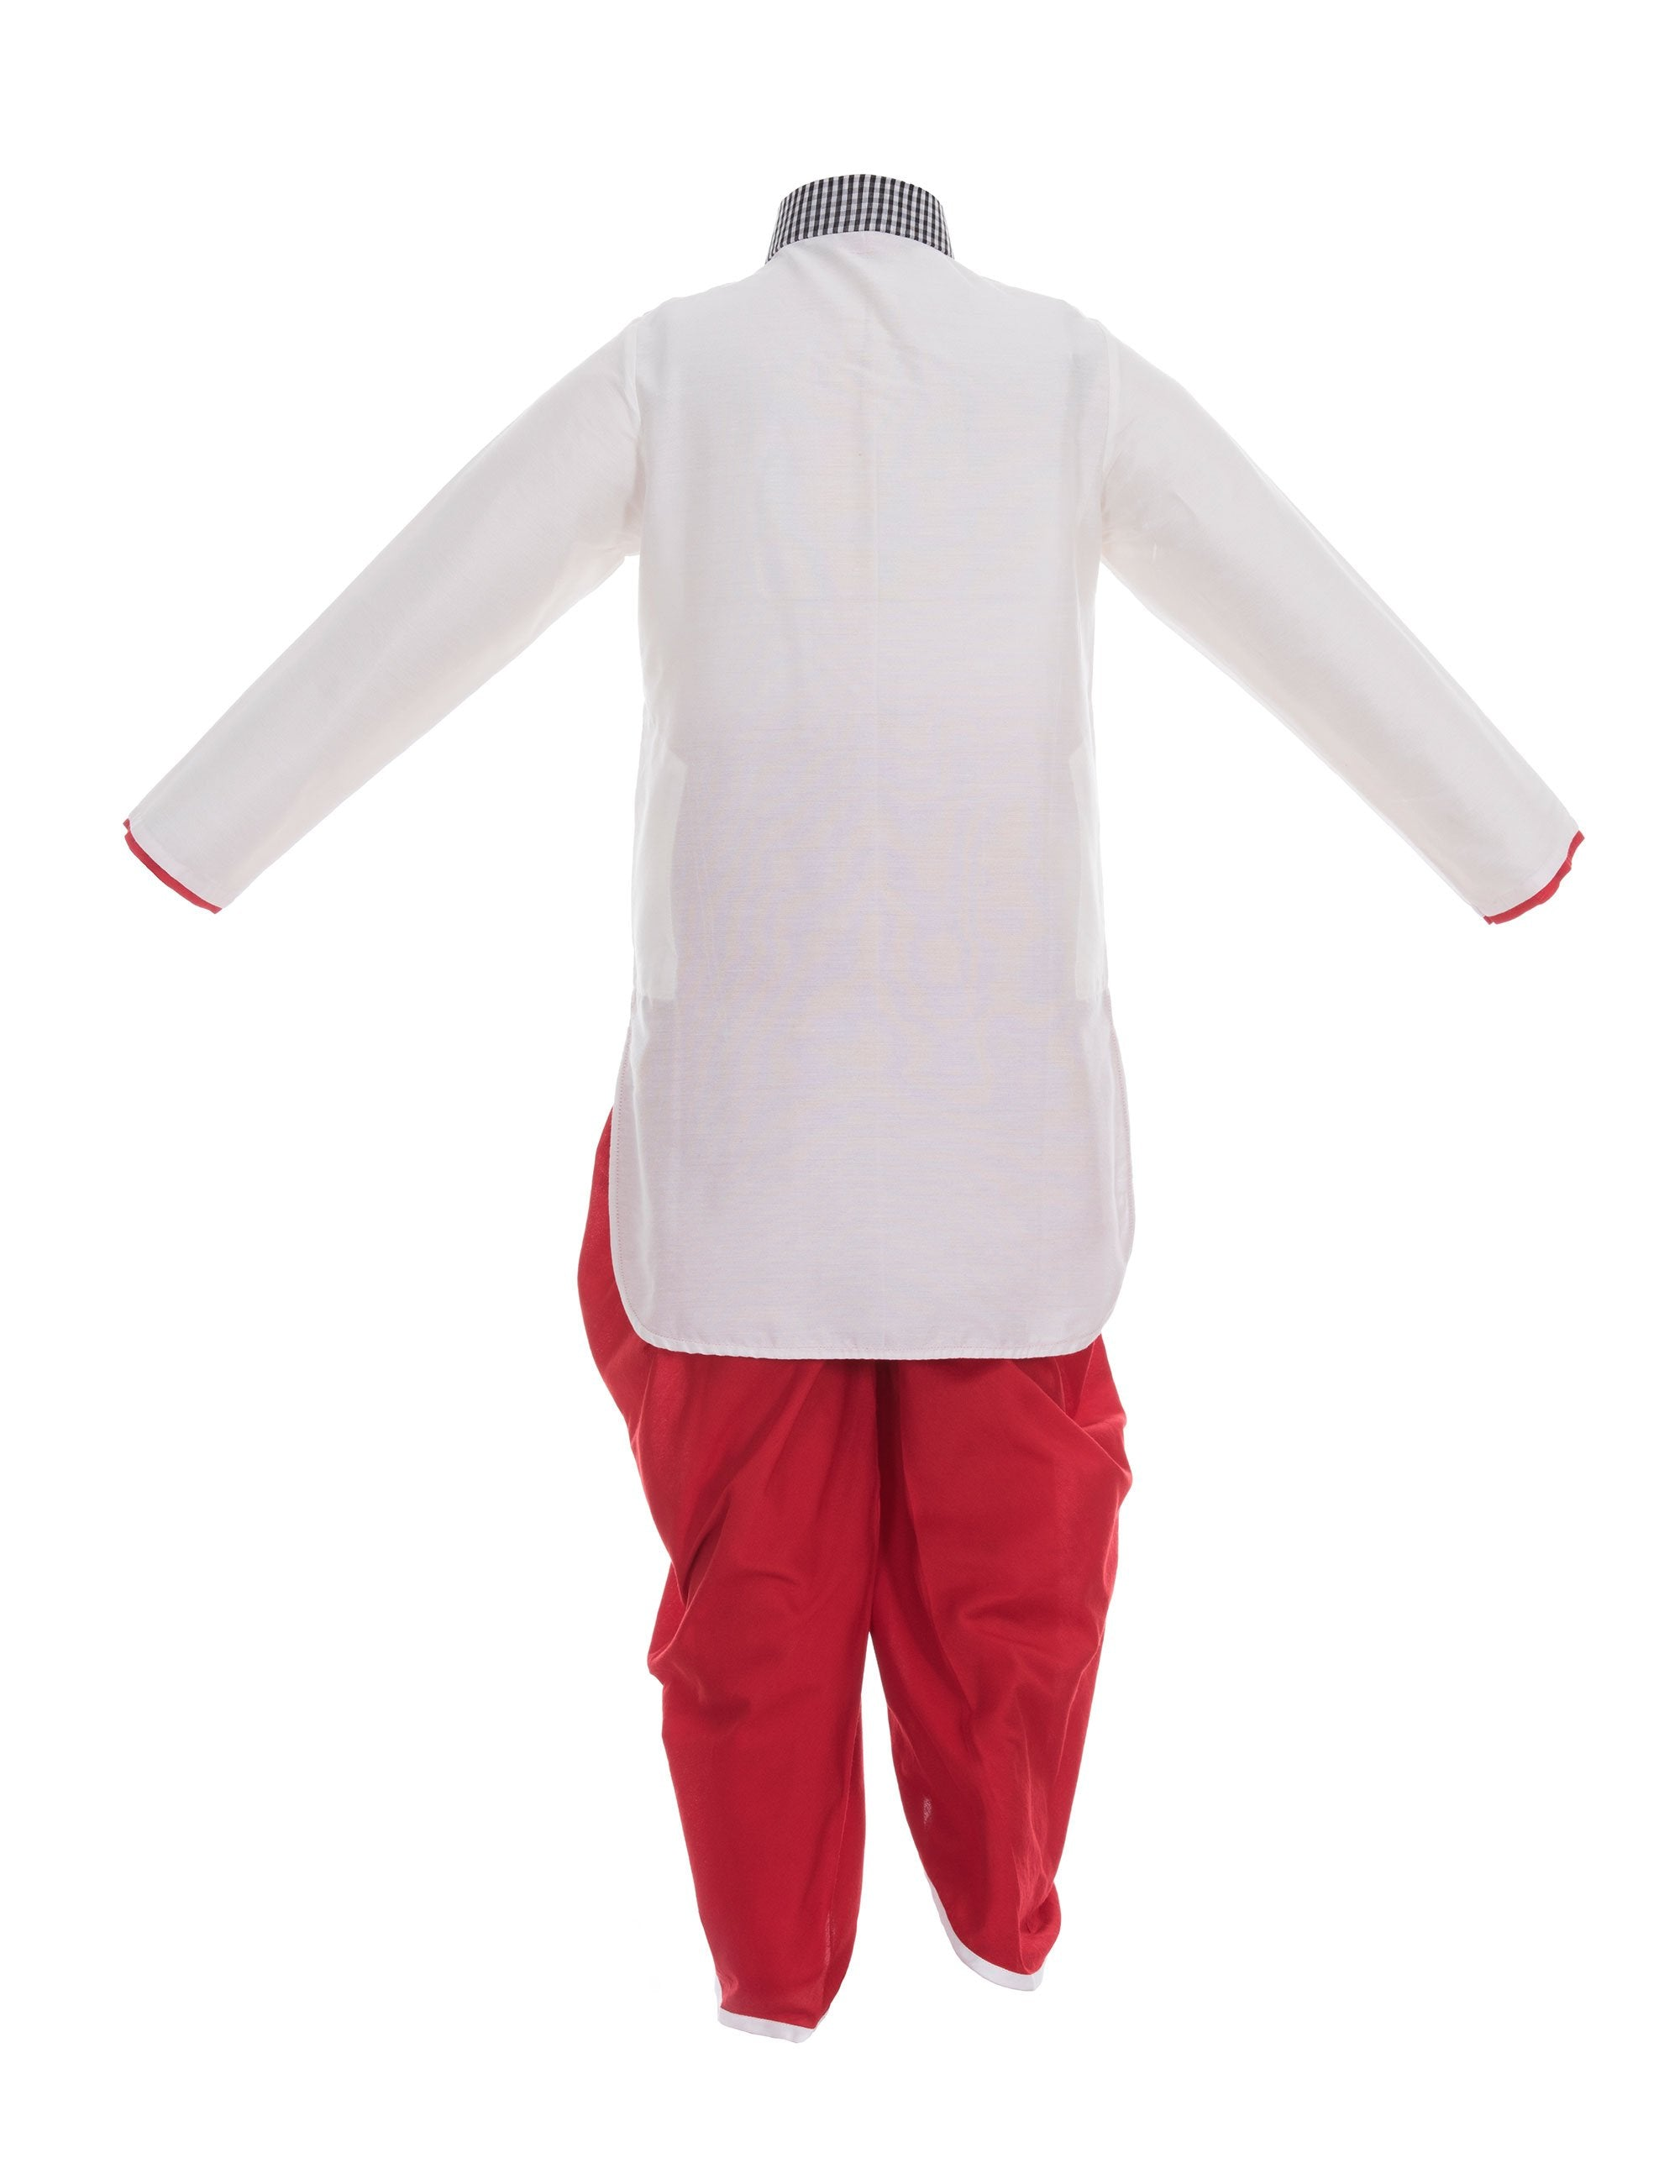 Owl Kurta/Dhoti Pants in White and Red for Boys